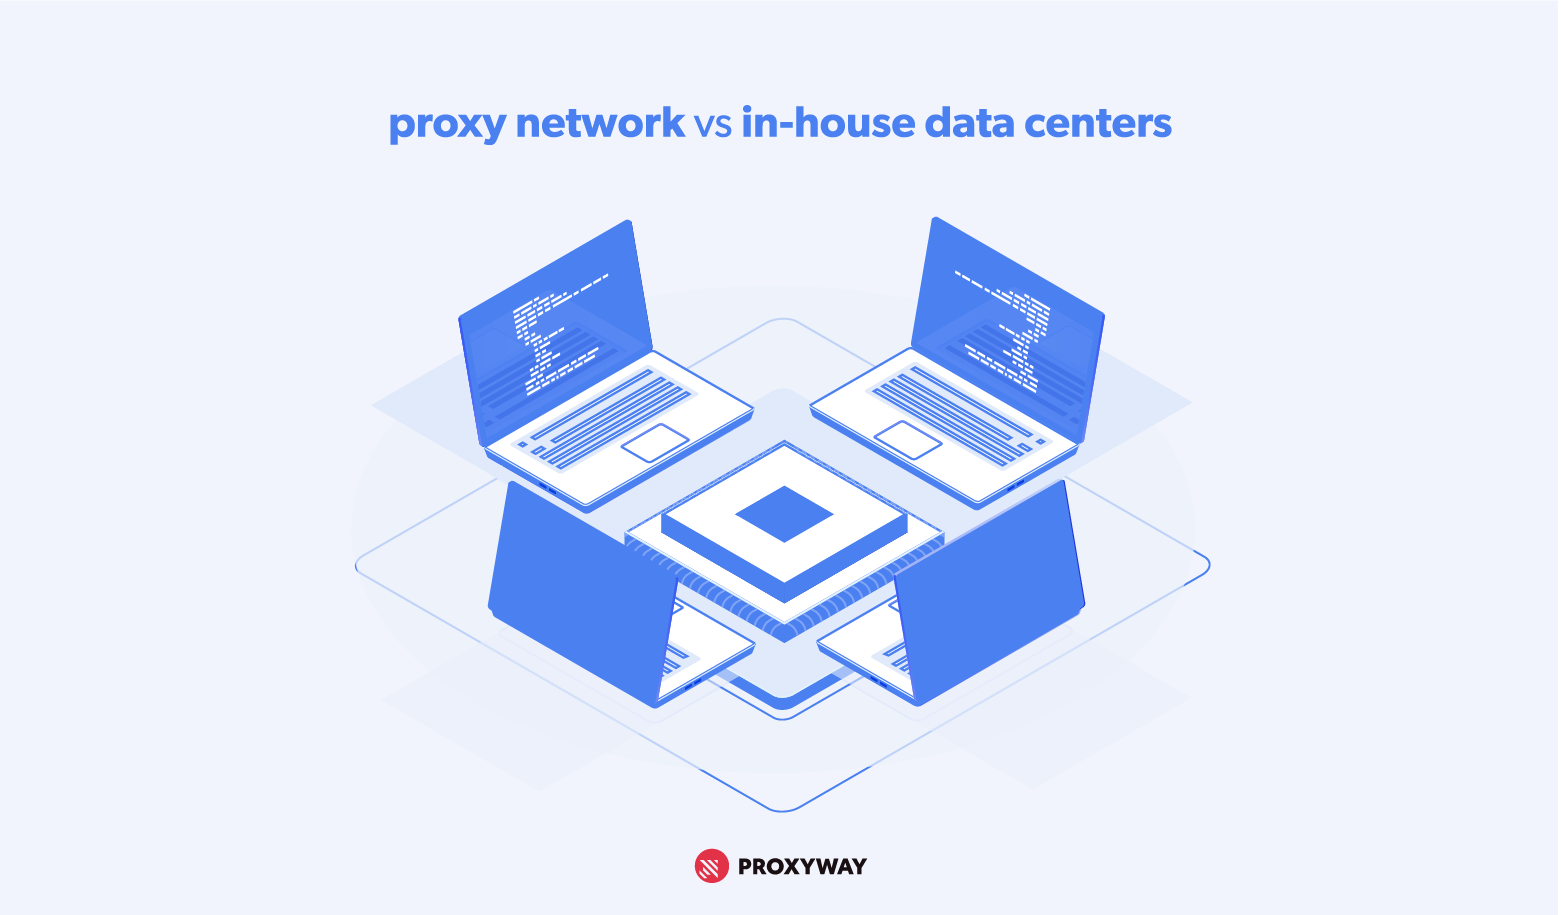 Proxyway graphic of using in house data centers vs proxy networks